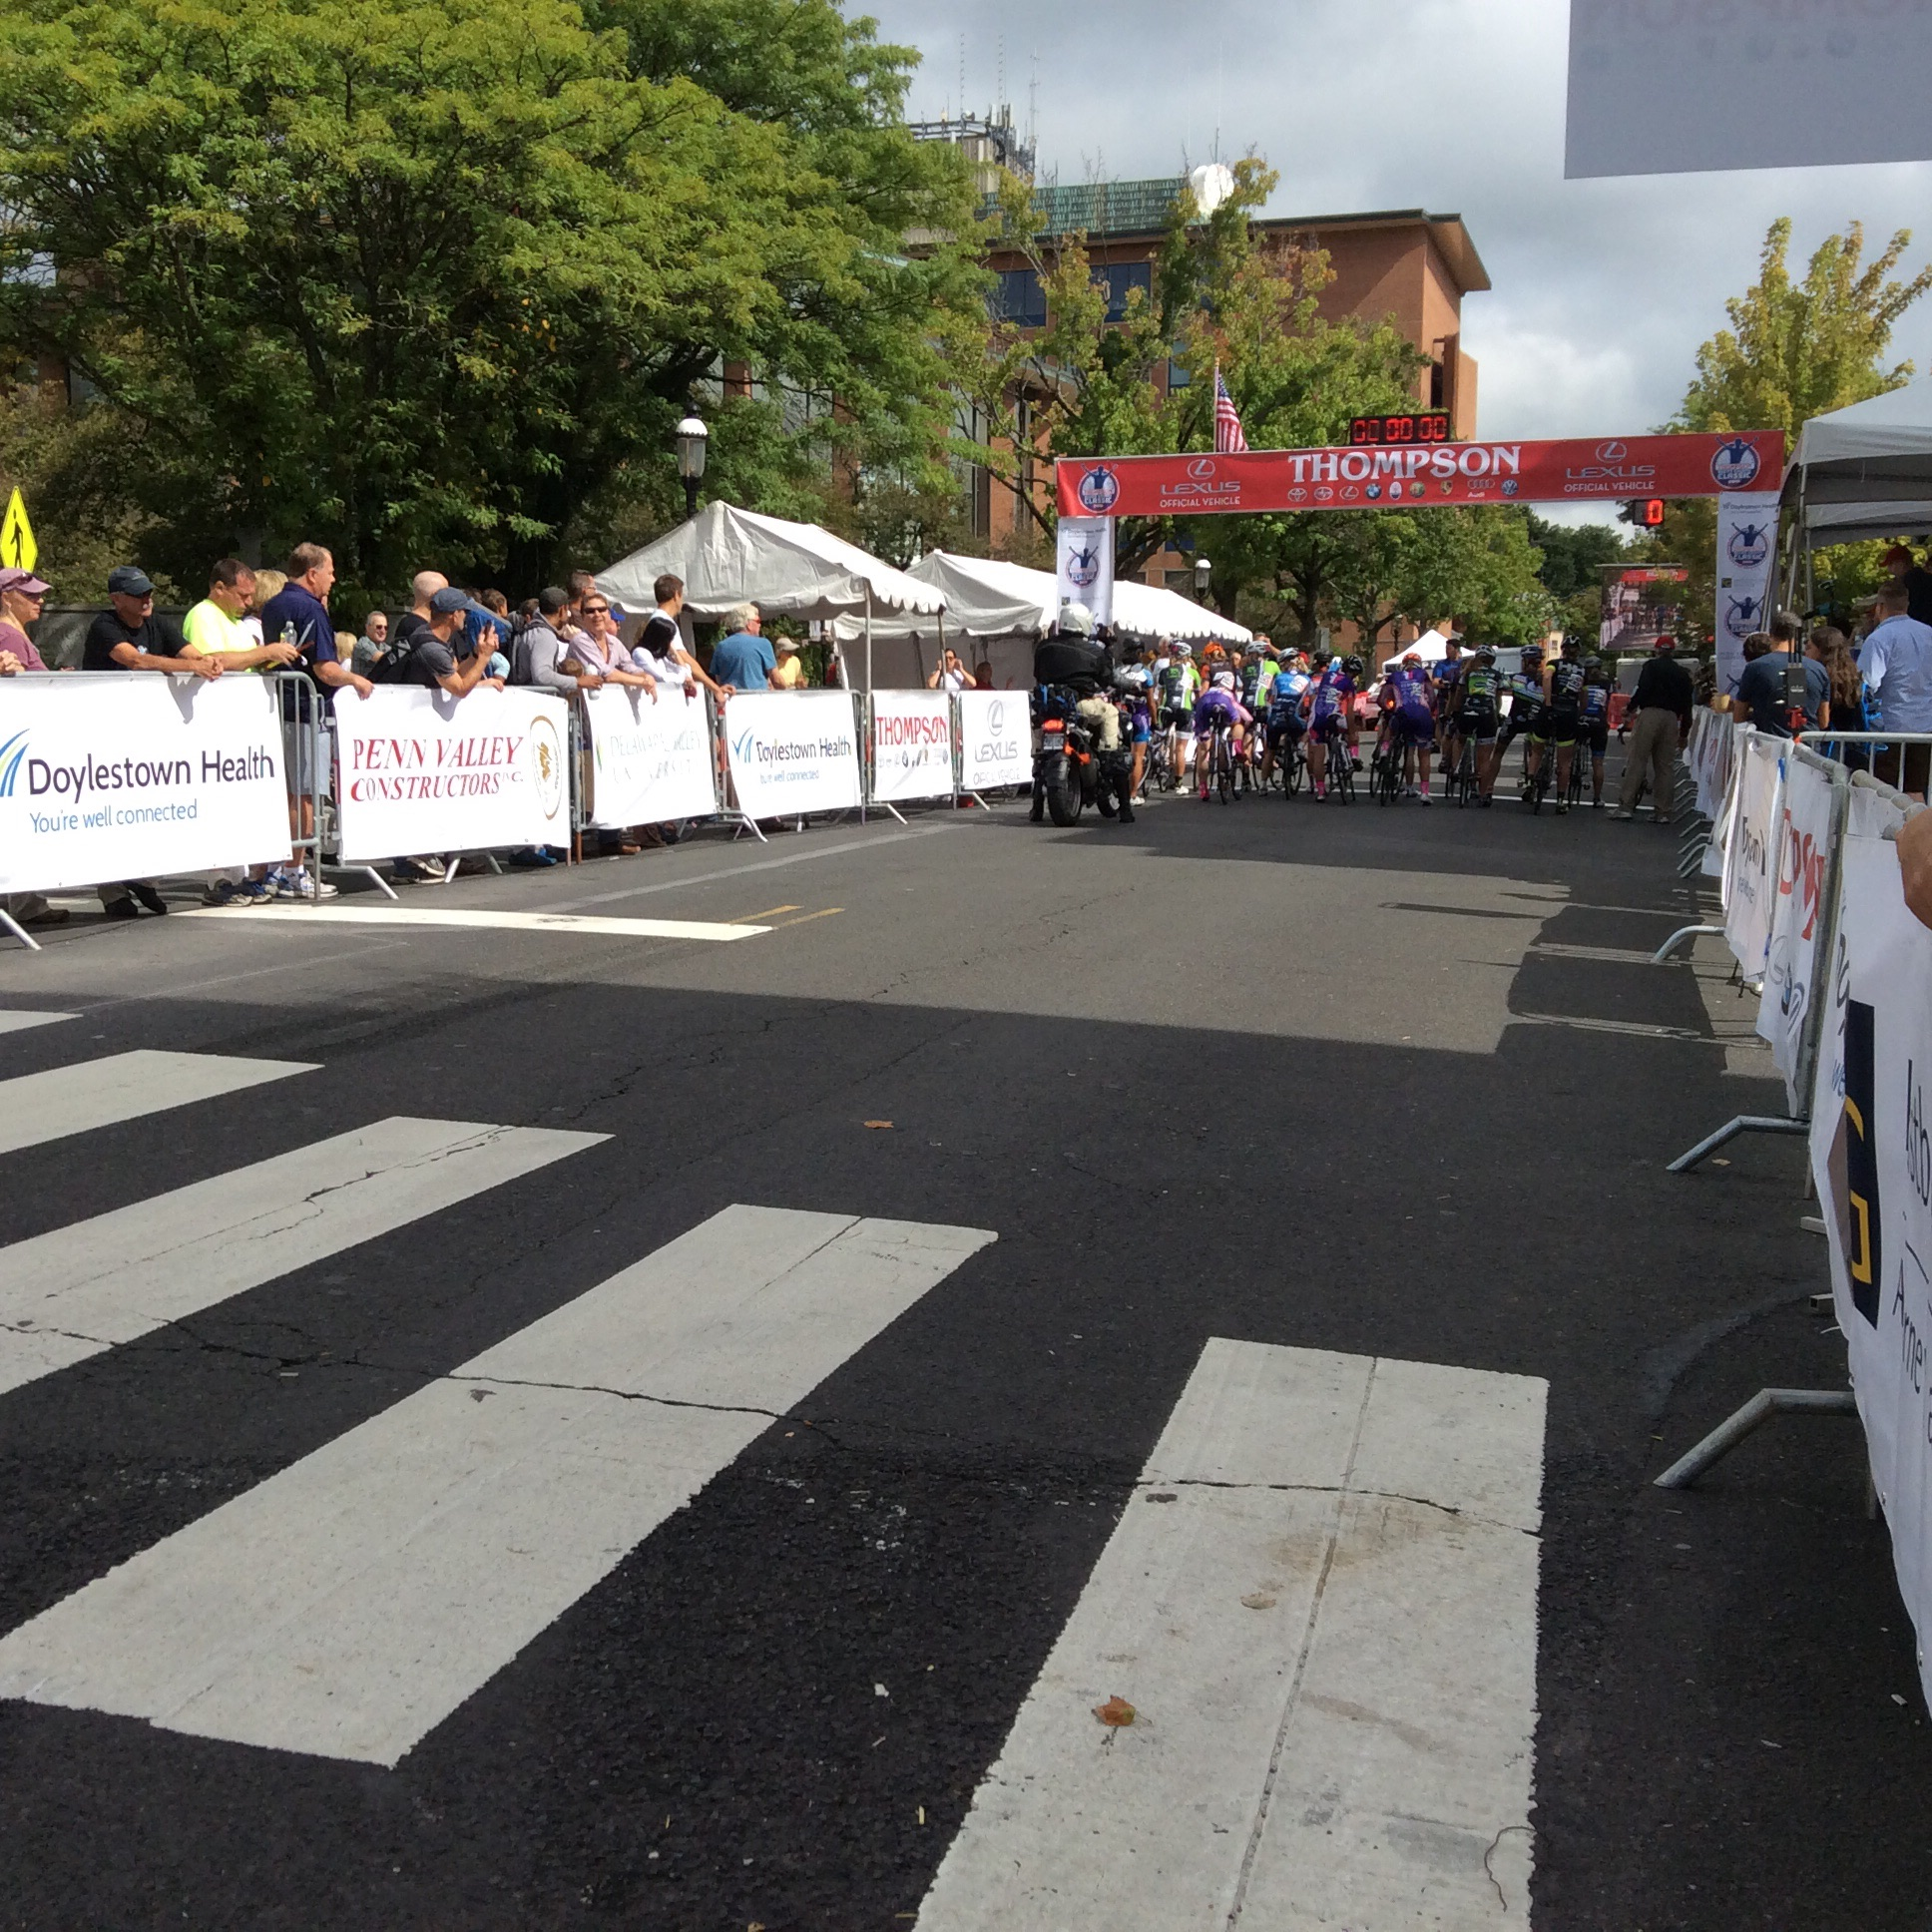 The start of the women's professional race.